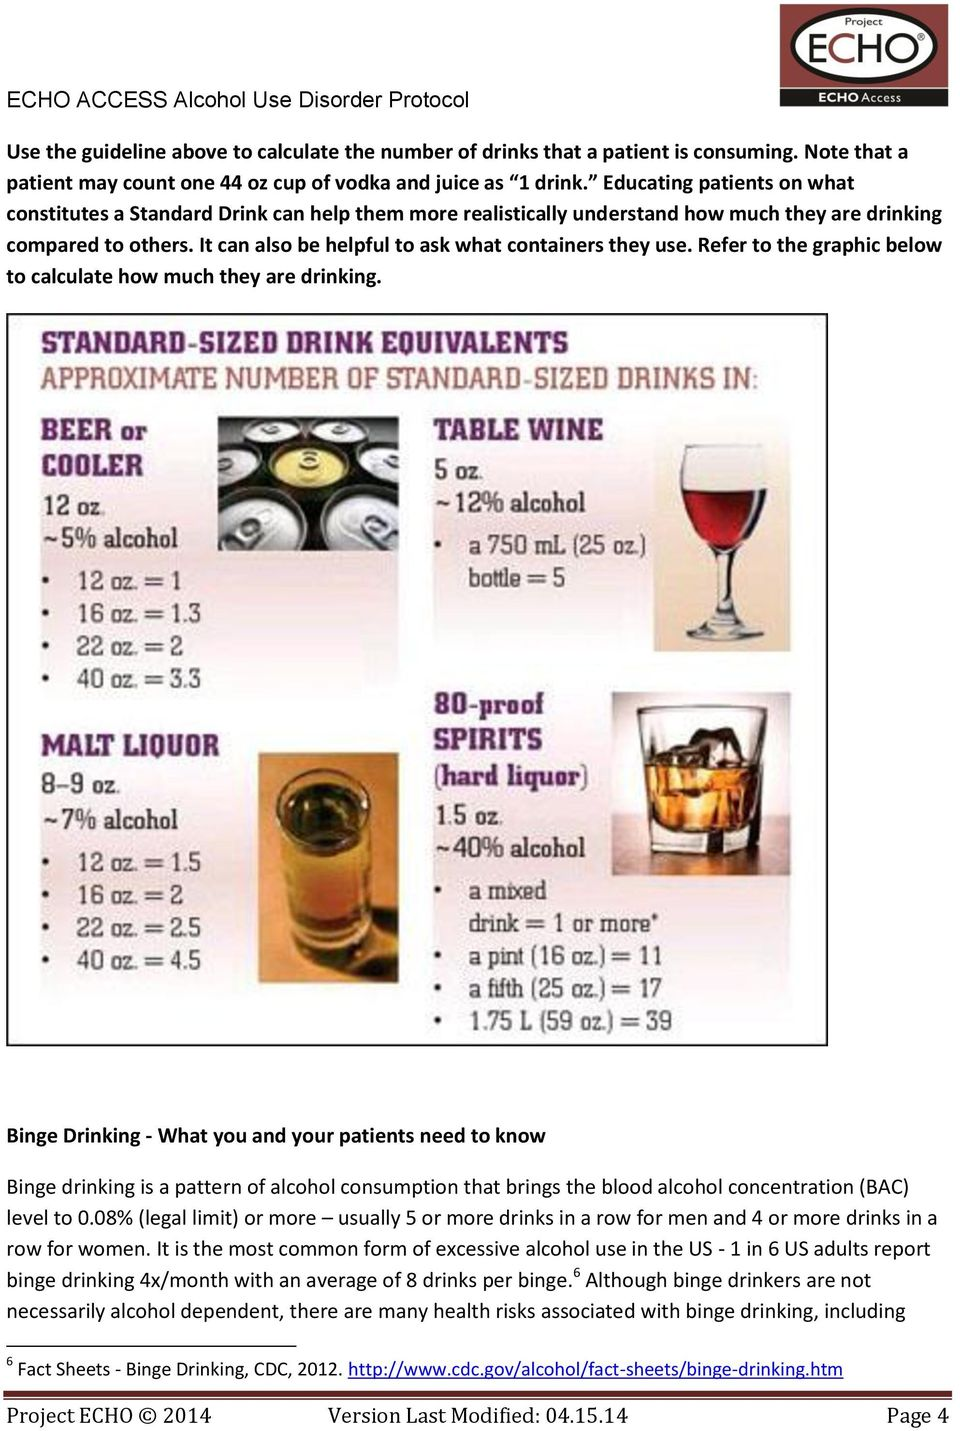 It can also be helpful to ask what containers they use. Refer to the graphic below to calculate how much they are drinking.